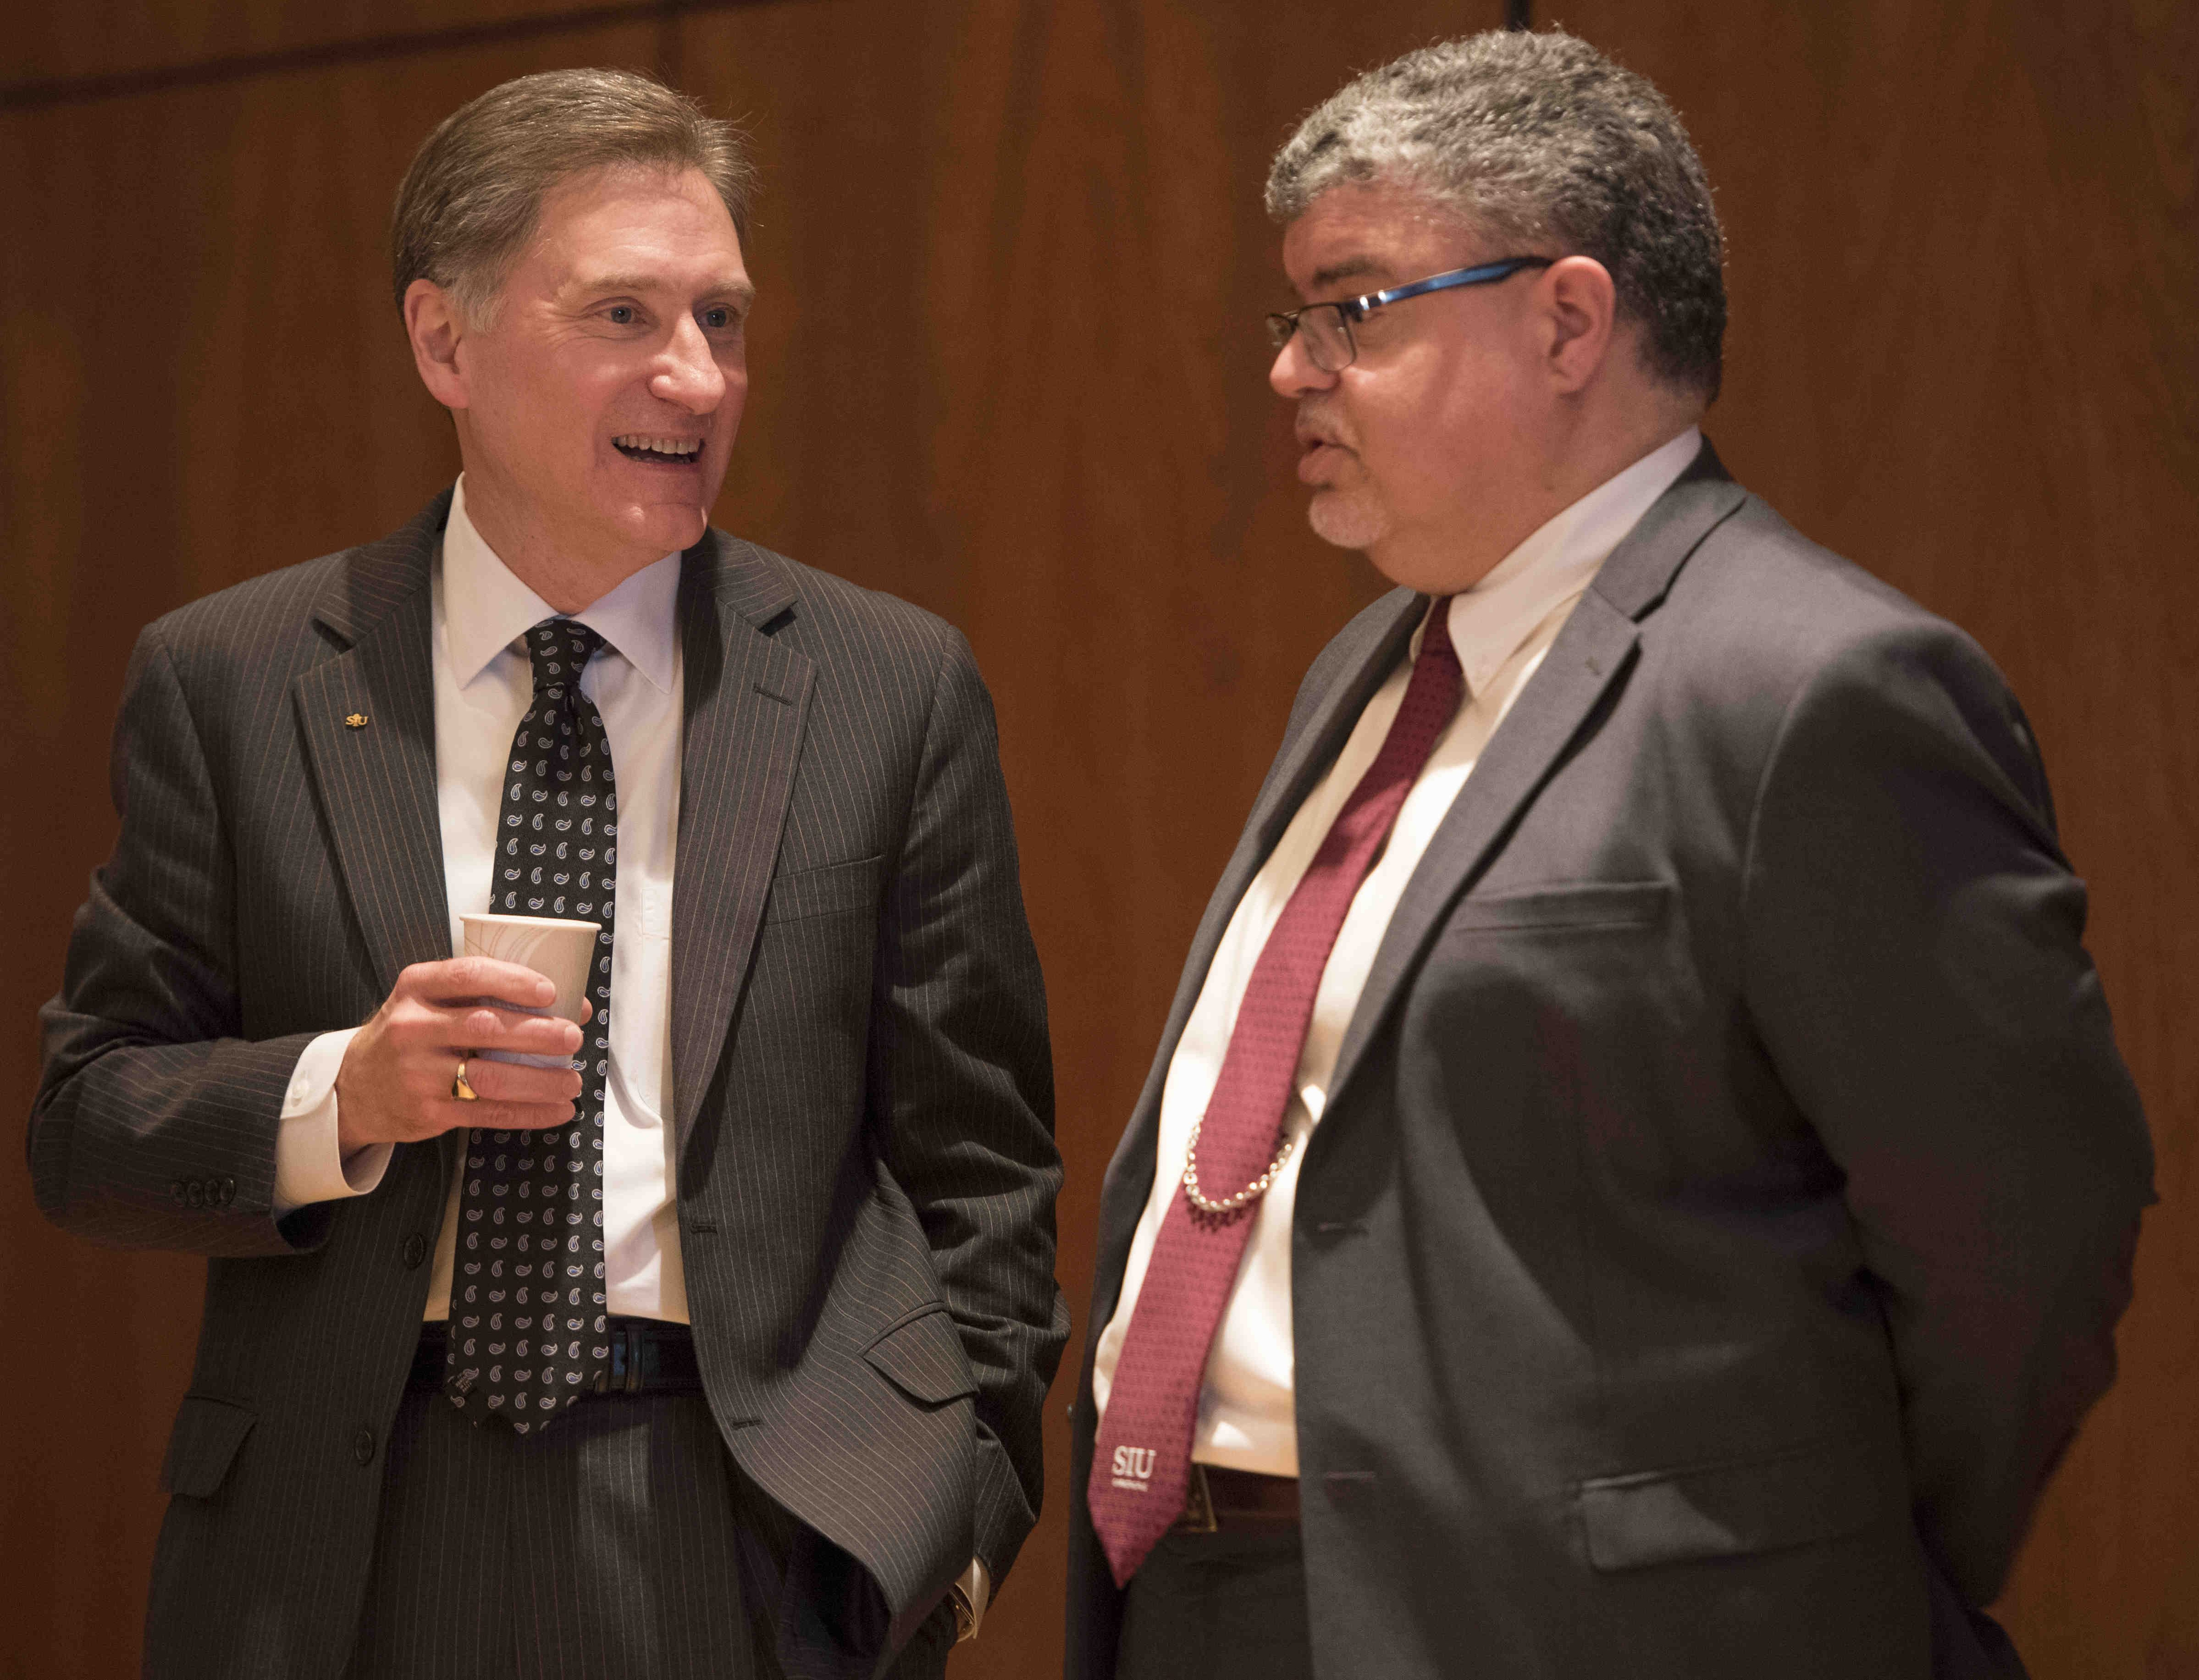 SIU President Randy Dunn speaks to interim Chancellor Brad Colwell on Thursday, April 6, 2017, during a recess of the SIU Board of Trustees meeting in the Student Center ballrooms. (Bill Lukitsch | @lukitsbill)